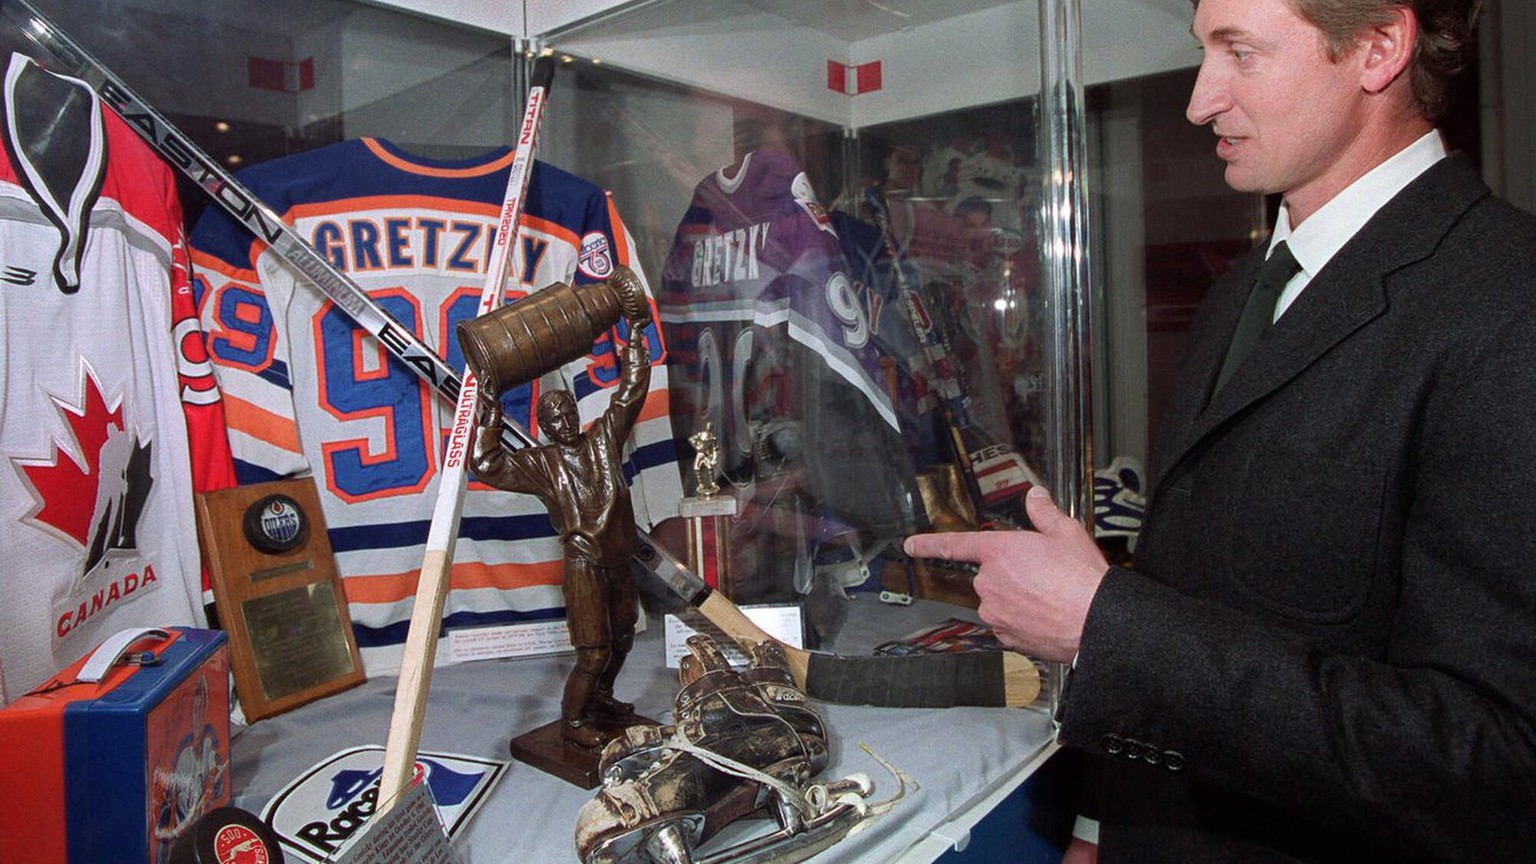 Wayne Gretzky stops to take a look at a display honoring him at the Hockey Hall of Fame in Toronto, October 18, 1999.  (KEYSTONE/AP Photo/Frank Gunn)